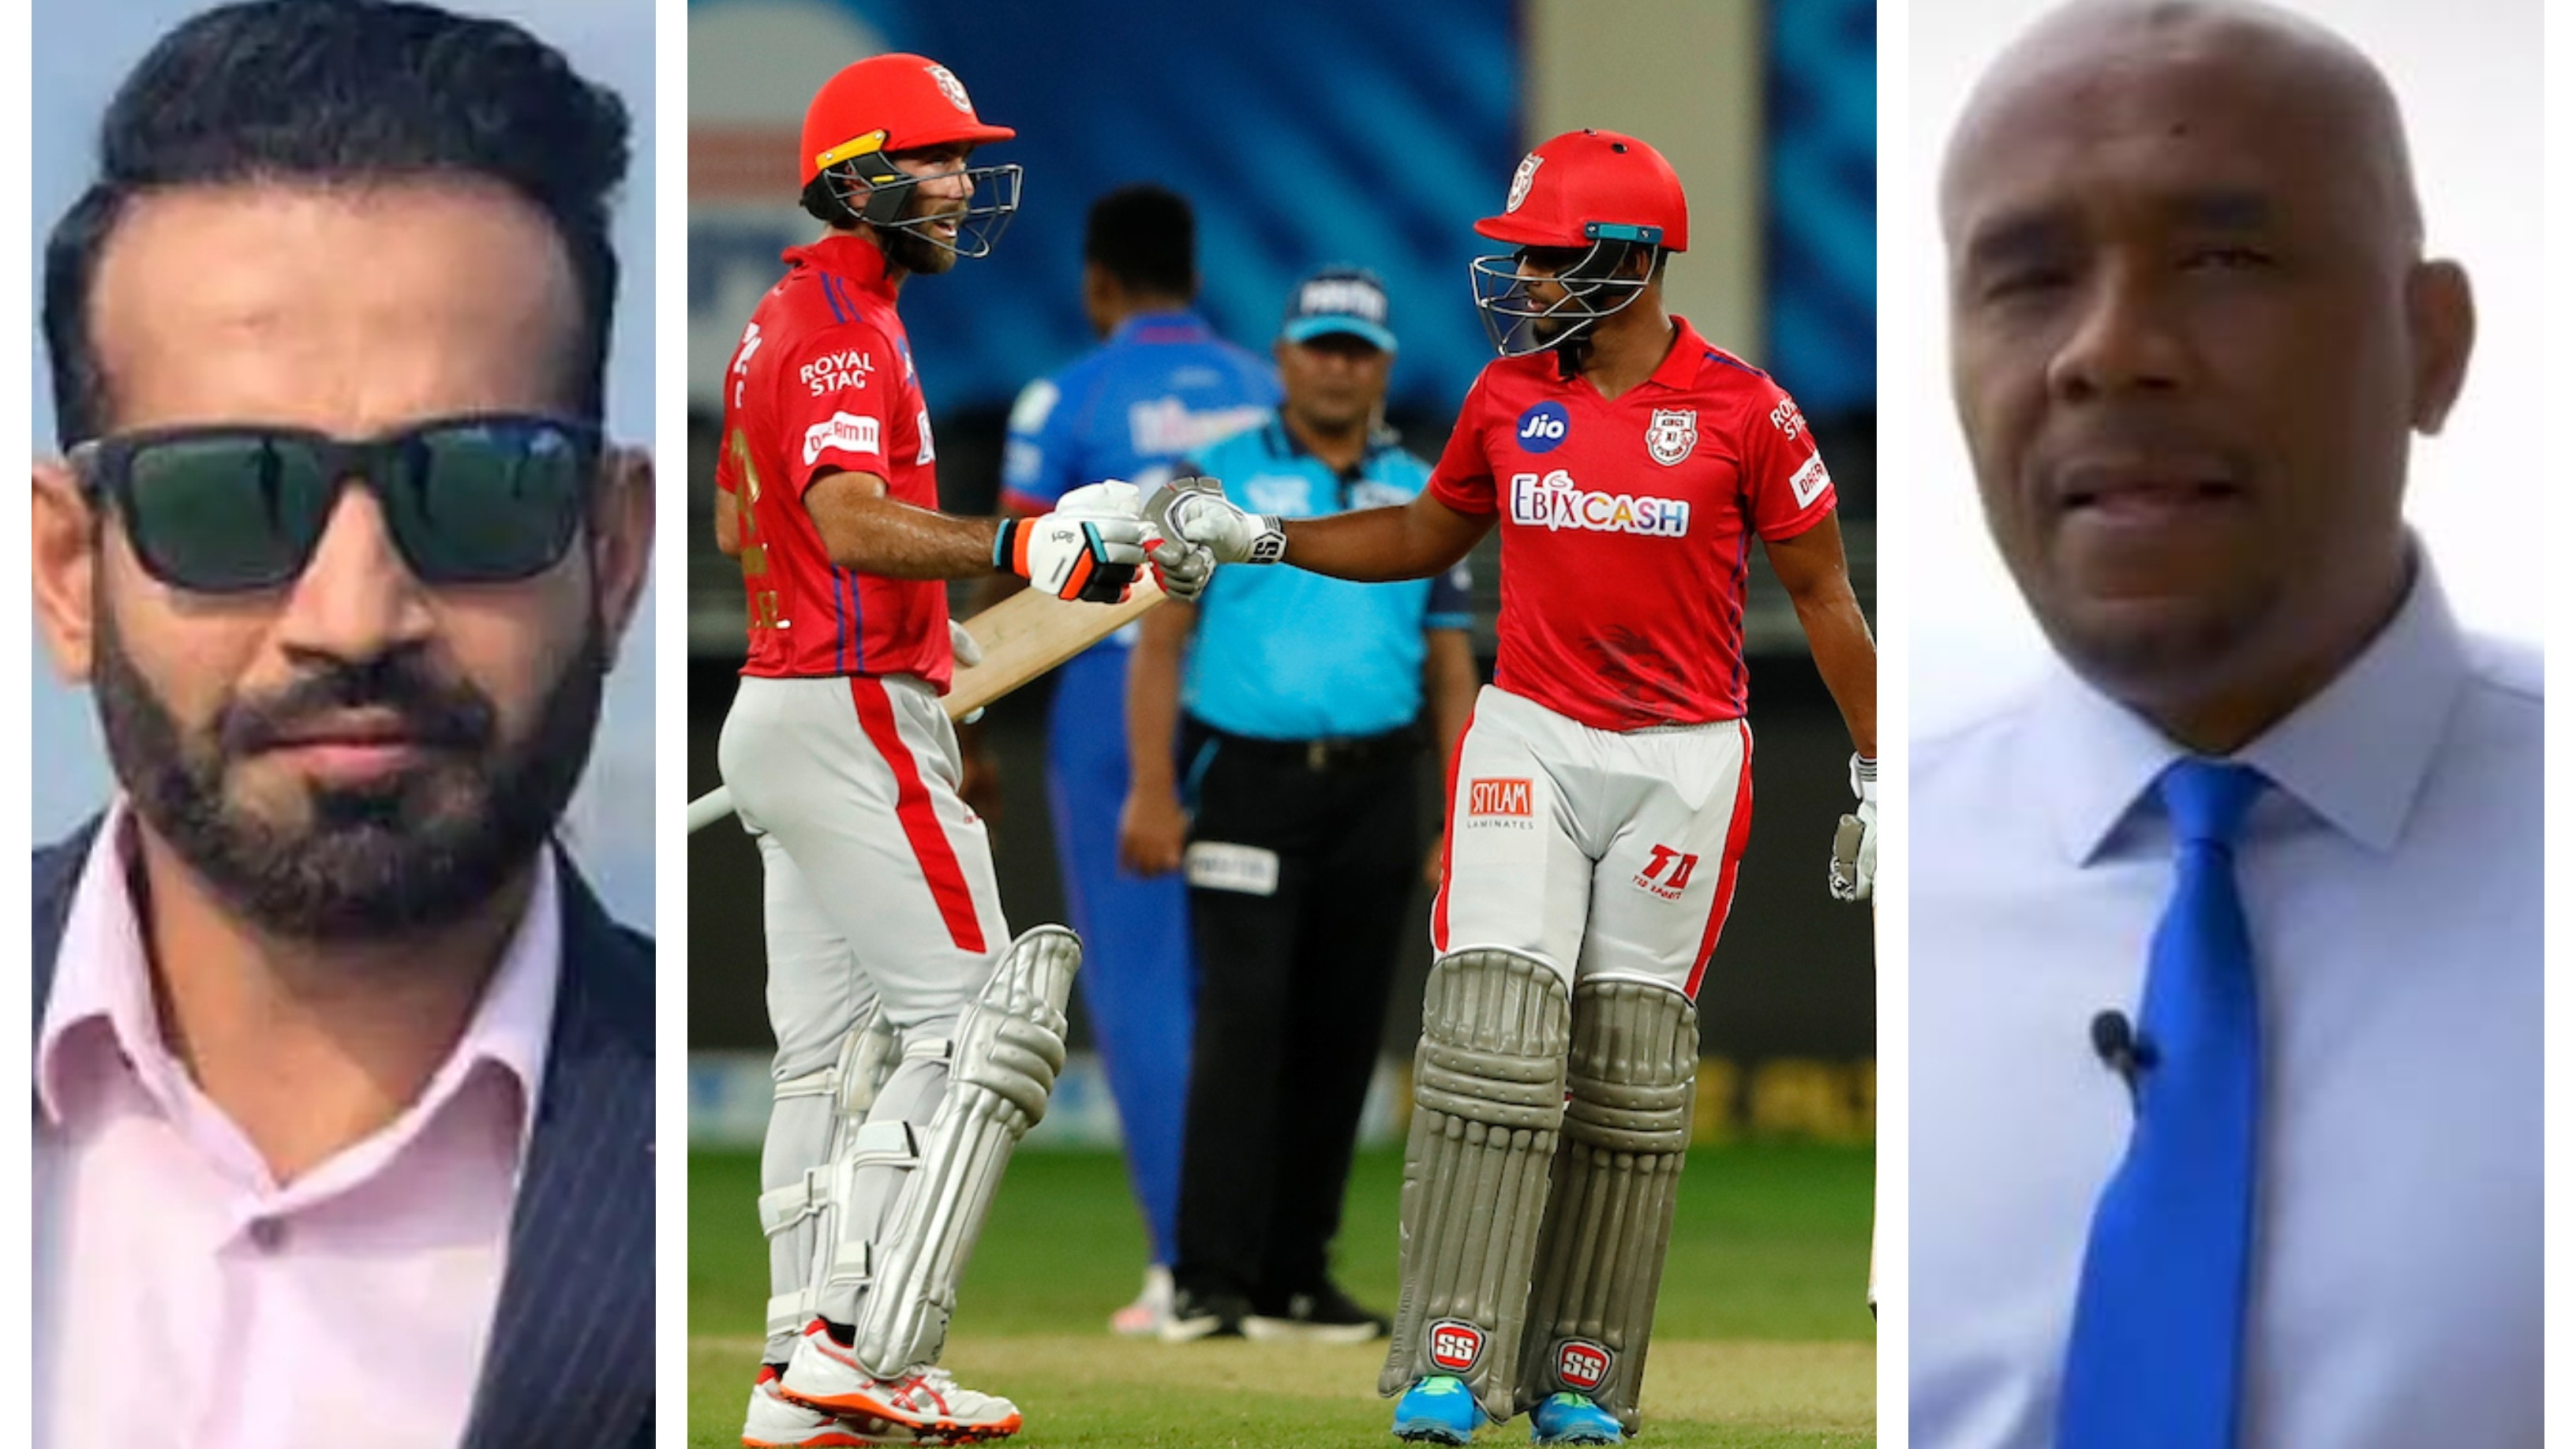 IPL 2020: Cricket fraternity reacts as Nicholas Pooran's blazing fifty powers KXIP to 5-wicket win over DC